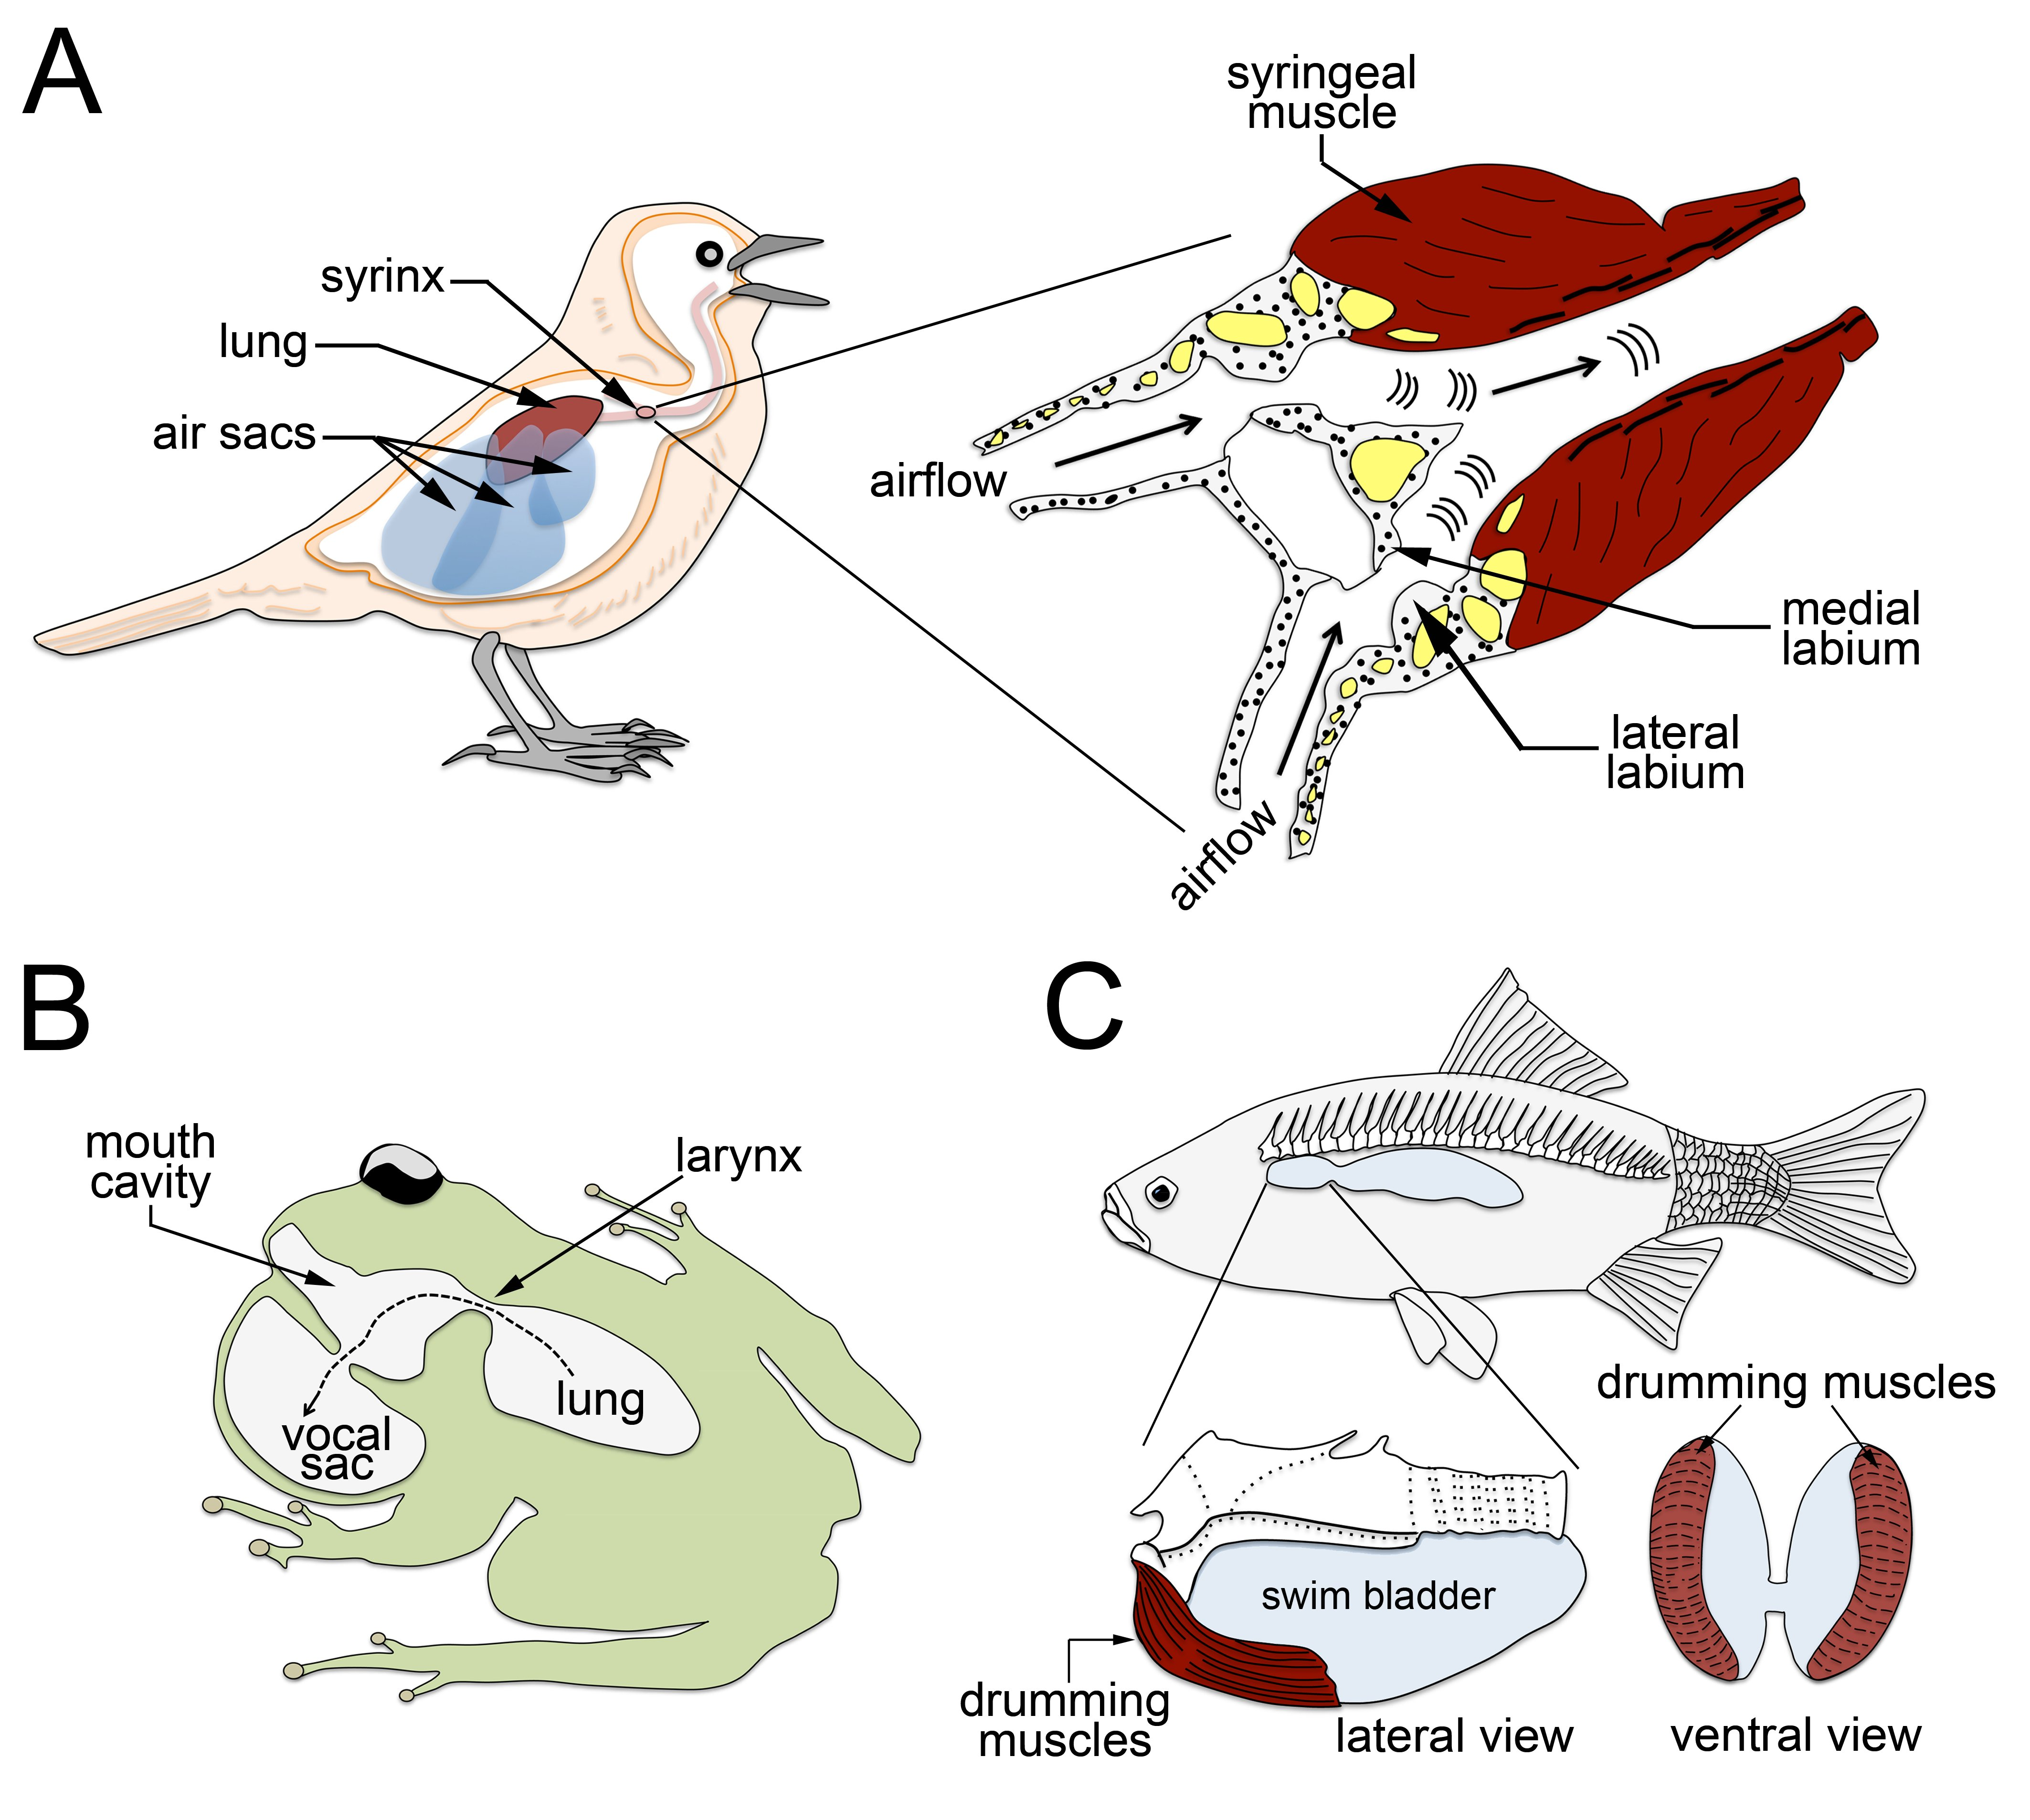 Figure 2. Anatomy of the vocal organ in non-mammalian vertebrates. (A) Schemes depicting the position (on the left) and structure (on the right) of the syrinx in birds. The basic anatomy of the larynx includes a paired set of strong muscles known as syringeal, several cartilages (in yellow), vibrating membranes known as labia, and a vocal tract. Air-containing appendages known as airs sacs receive and maintain inhaled air before passing it through the lungs, thereby functioning like a bellow device that continuously supplies pressurized expiratory airflow that forces vibration of the lateral and medial labia to produce vocalizations. Schemes adapted from https://academy.allaboutbirds.org/anatomy-of-bird-song-slides/ and Ladich and Winkler, 2017. (B) Scheme illustrating the vocal apparatus of amphibians, which shares anatomical structures with mammals, i.e. the larynx and vocal cords, and includes in addition vocal sacs. Like in mammals, amphibian vocal sounds are produced when forced exhalation sets off the vibration of the vocal folds. Scheme adapted from https://biologyboom.com/evolutionary-pressures-in-amphibians/ (C) Schemes illustrating the most common vocal apparatus of bony fishes. This sound-producing system depends on fast-contracting muscles know as drumming muscles that are associated with the swim bladder. Schemes adapted from https://u.osu.edu/biomuseum/category/biodiversity/local-fauna/page/2/ and Ladich and Winkler, 2017.